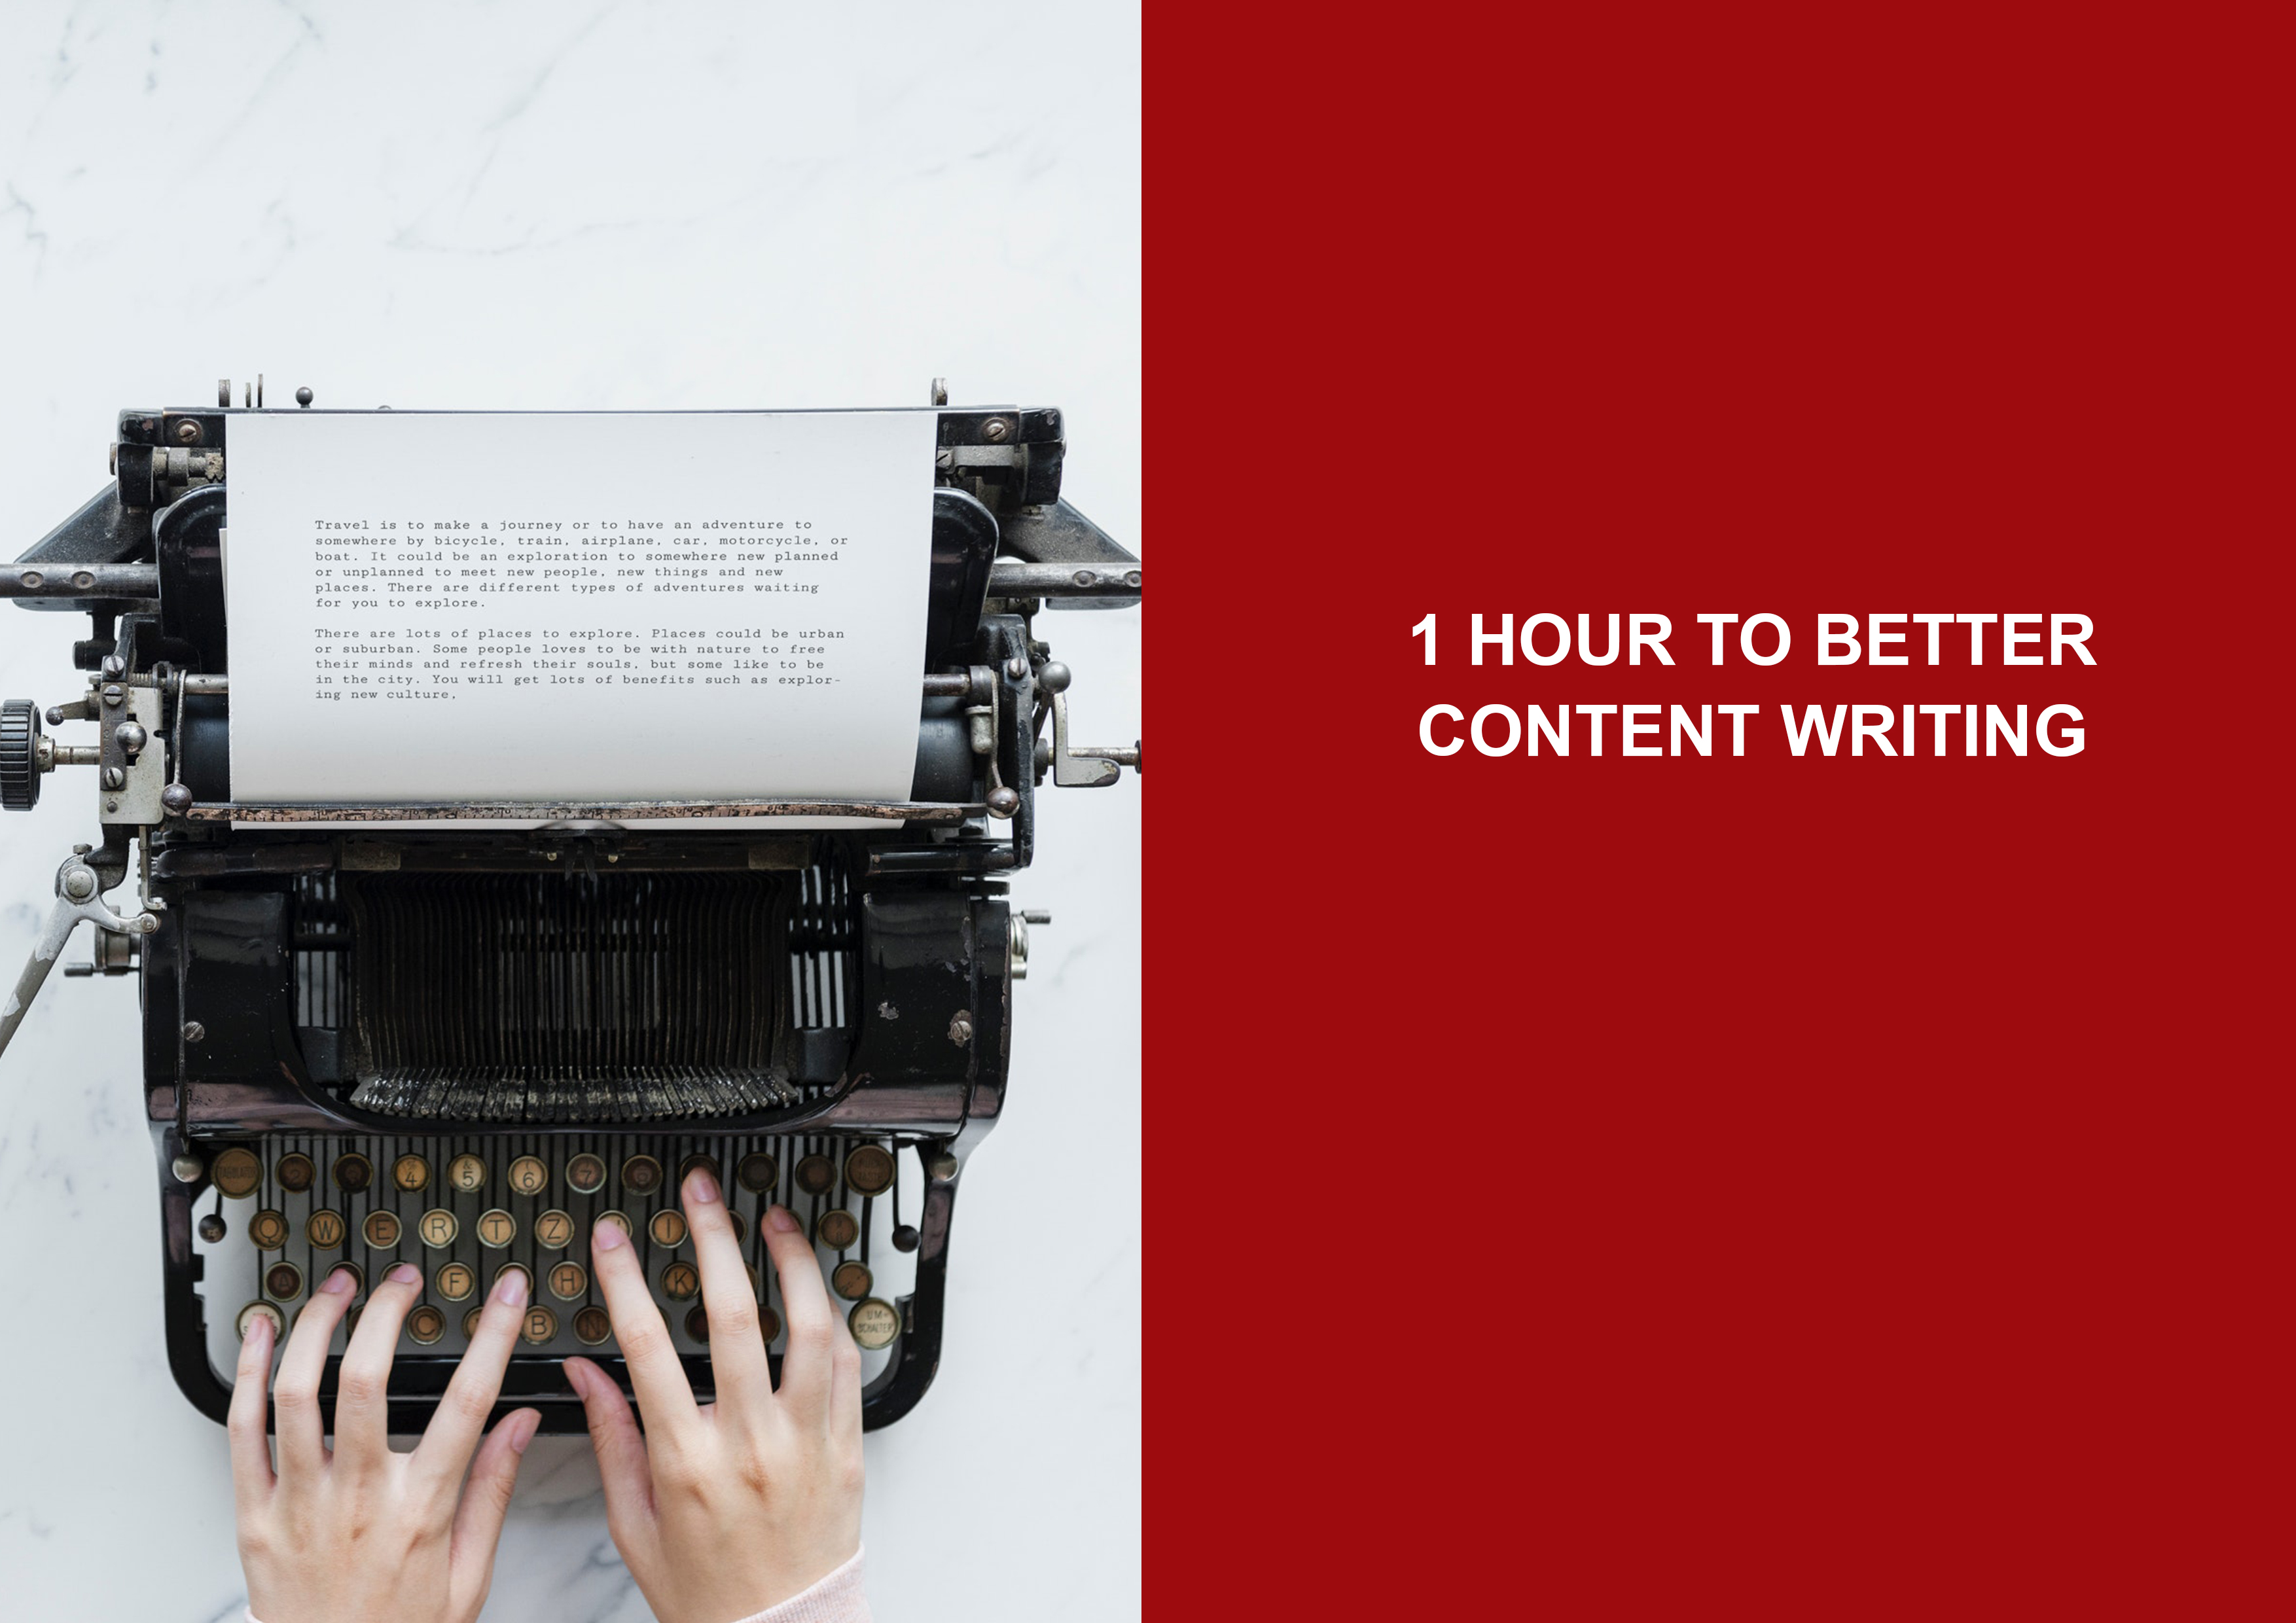 Better Content Writing